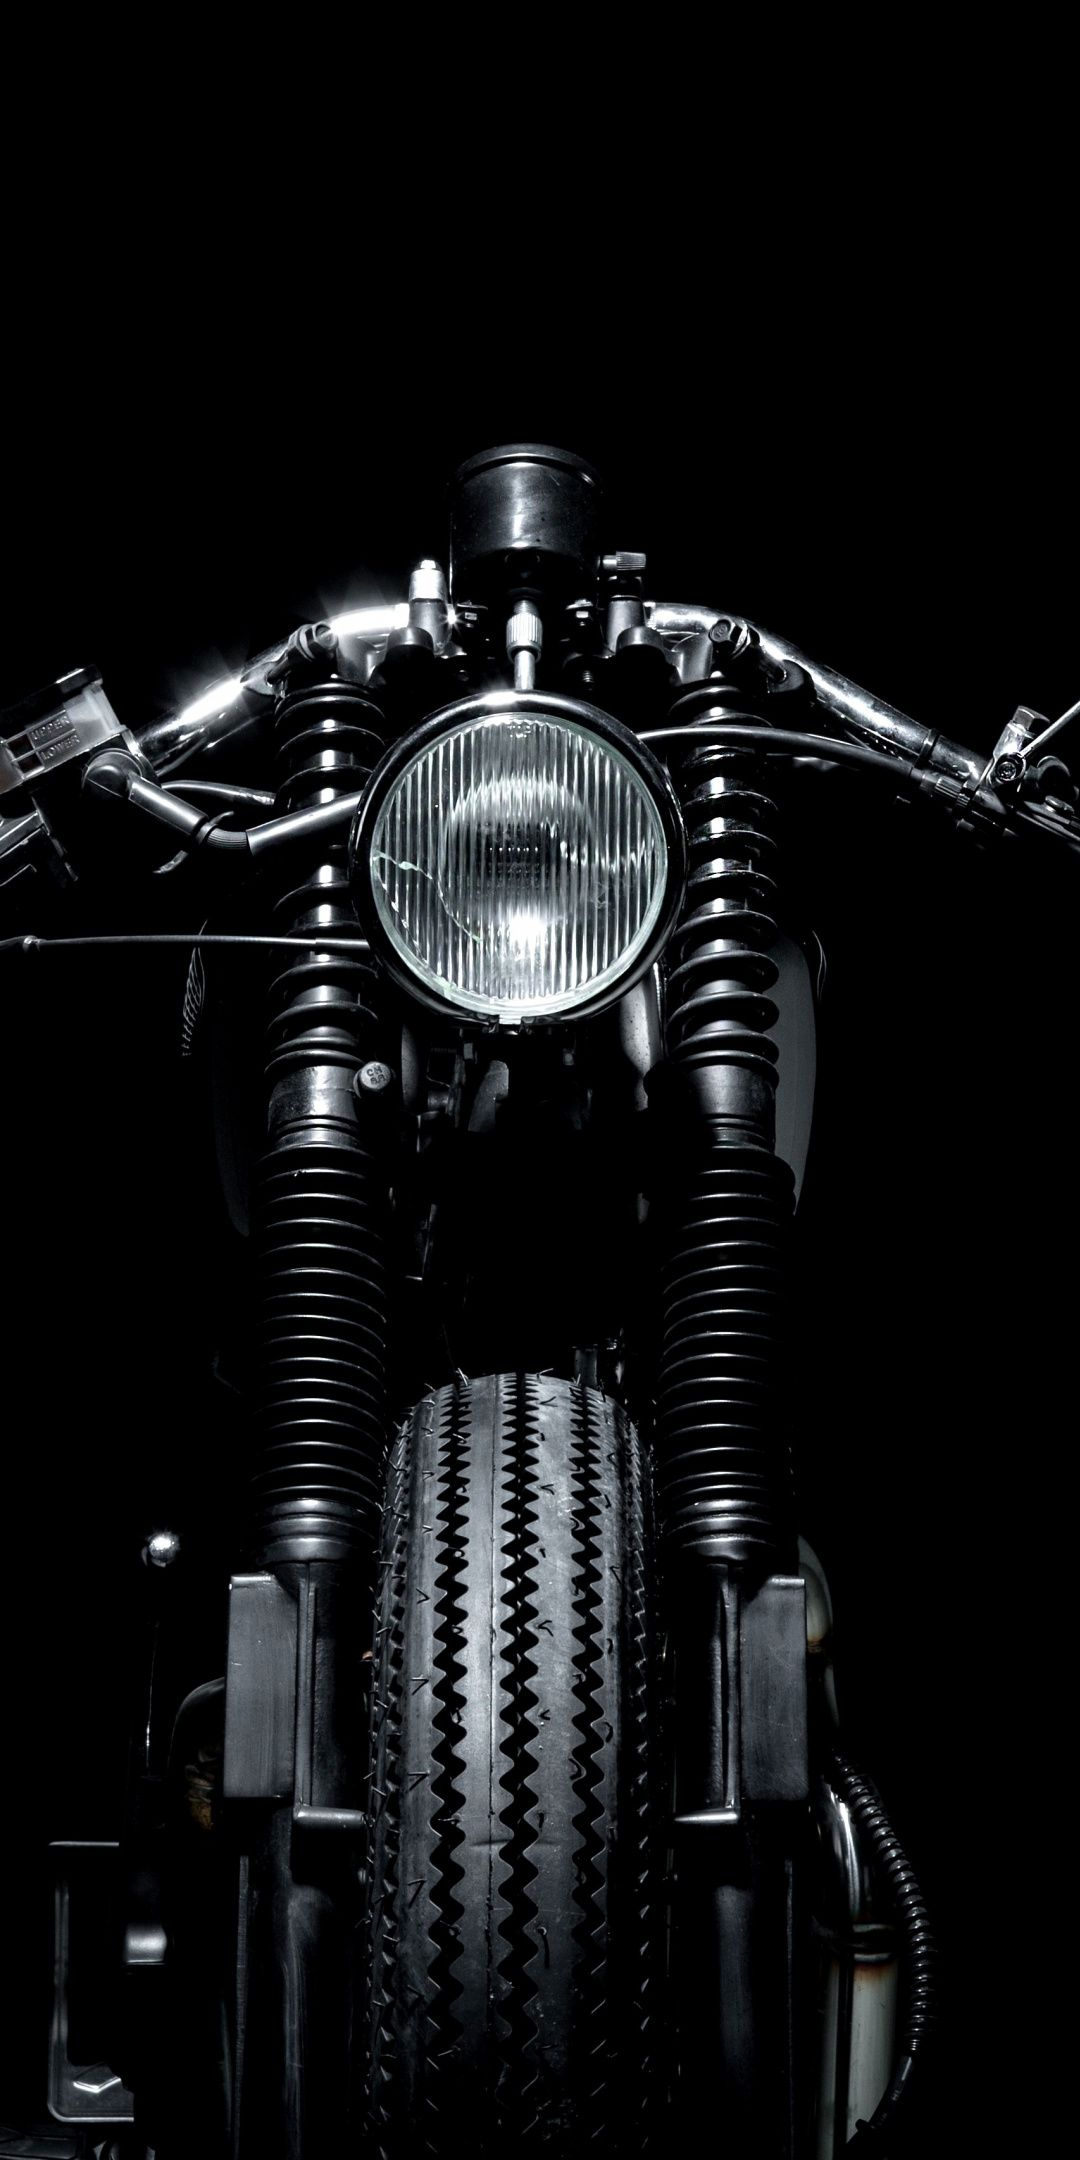 Motorcycle Portrait 1080x2160 Wallpaper Cafe Racer Bikes Motorcycle Wallpaper Motorcycle Photography